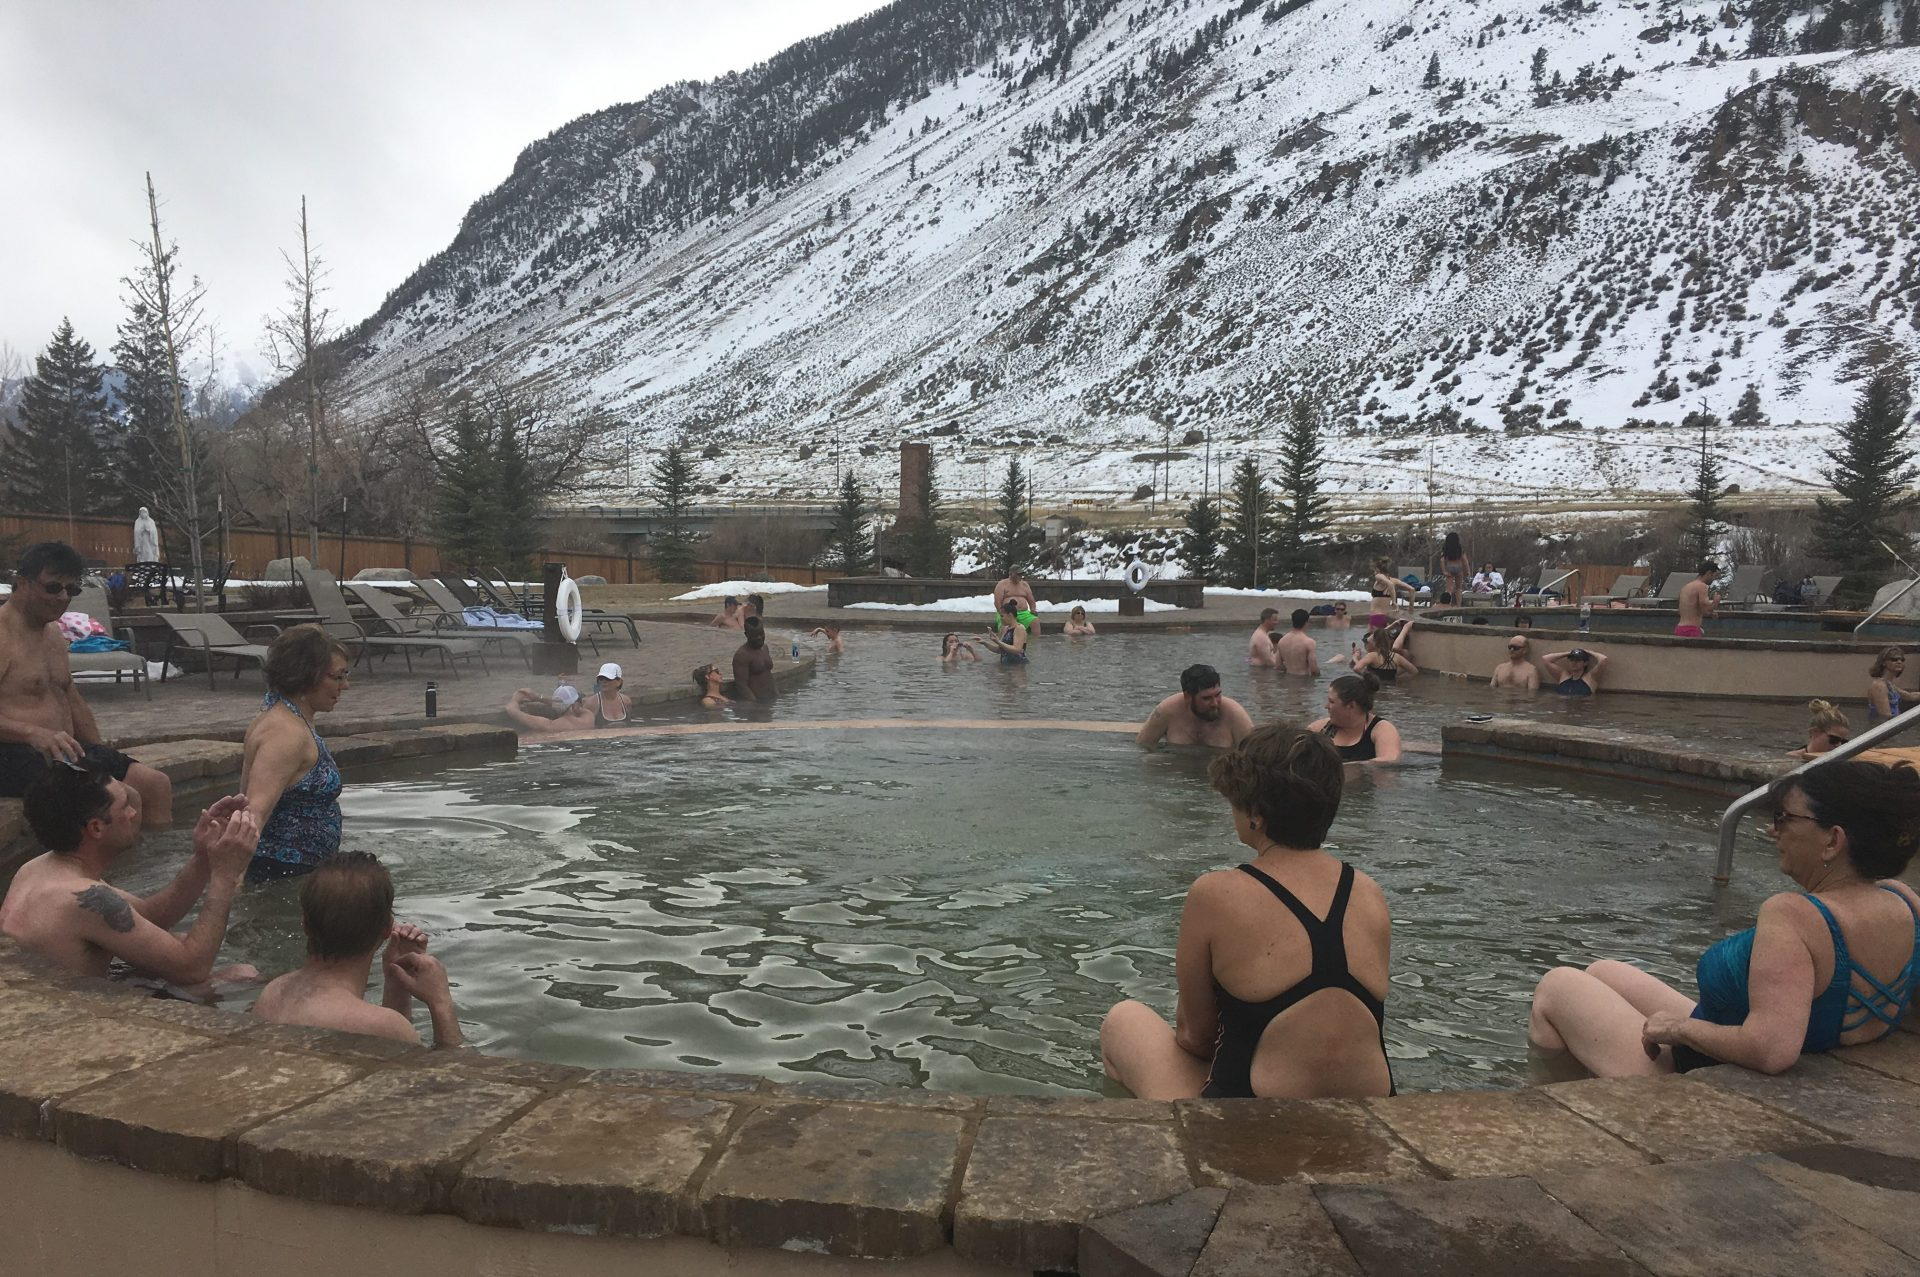 People soaking at Yellowstone Hot Springs, one of many Montana hot springs